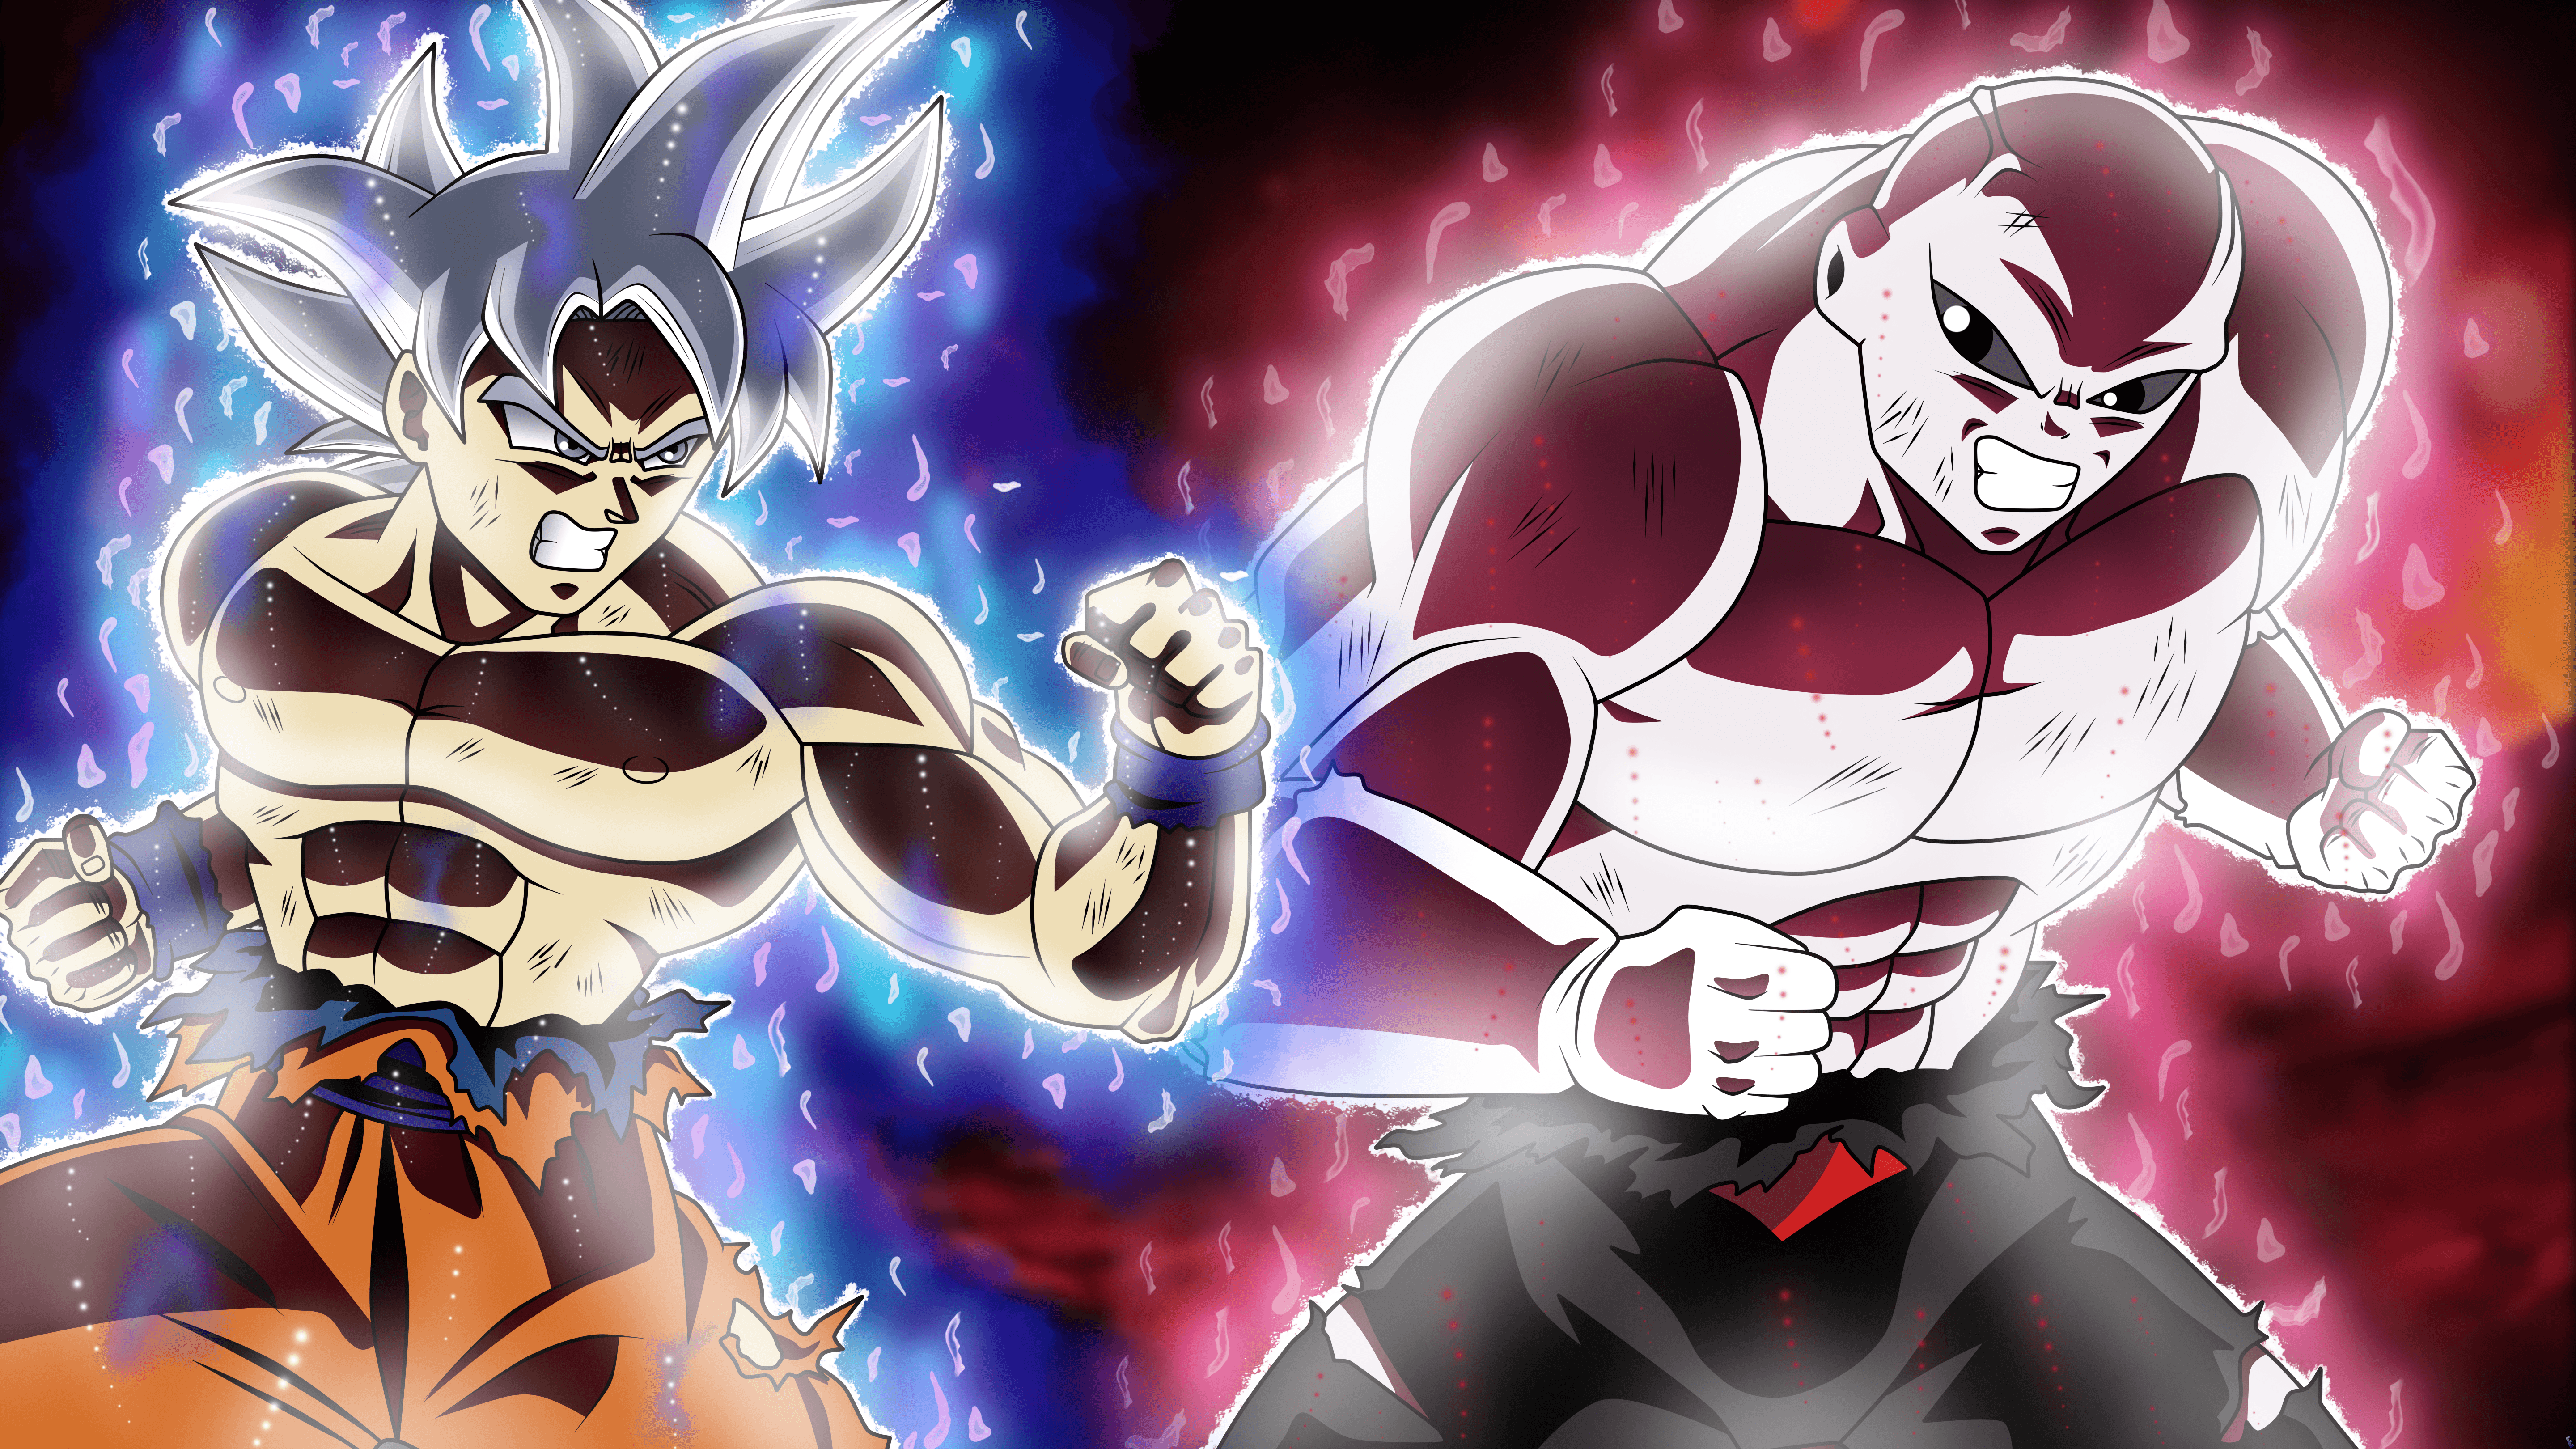 Goku Vs Jiren Wallpapers Top Free Goku Vs Jiren Backgrounds